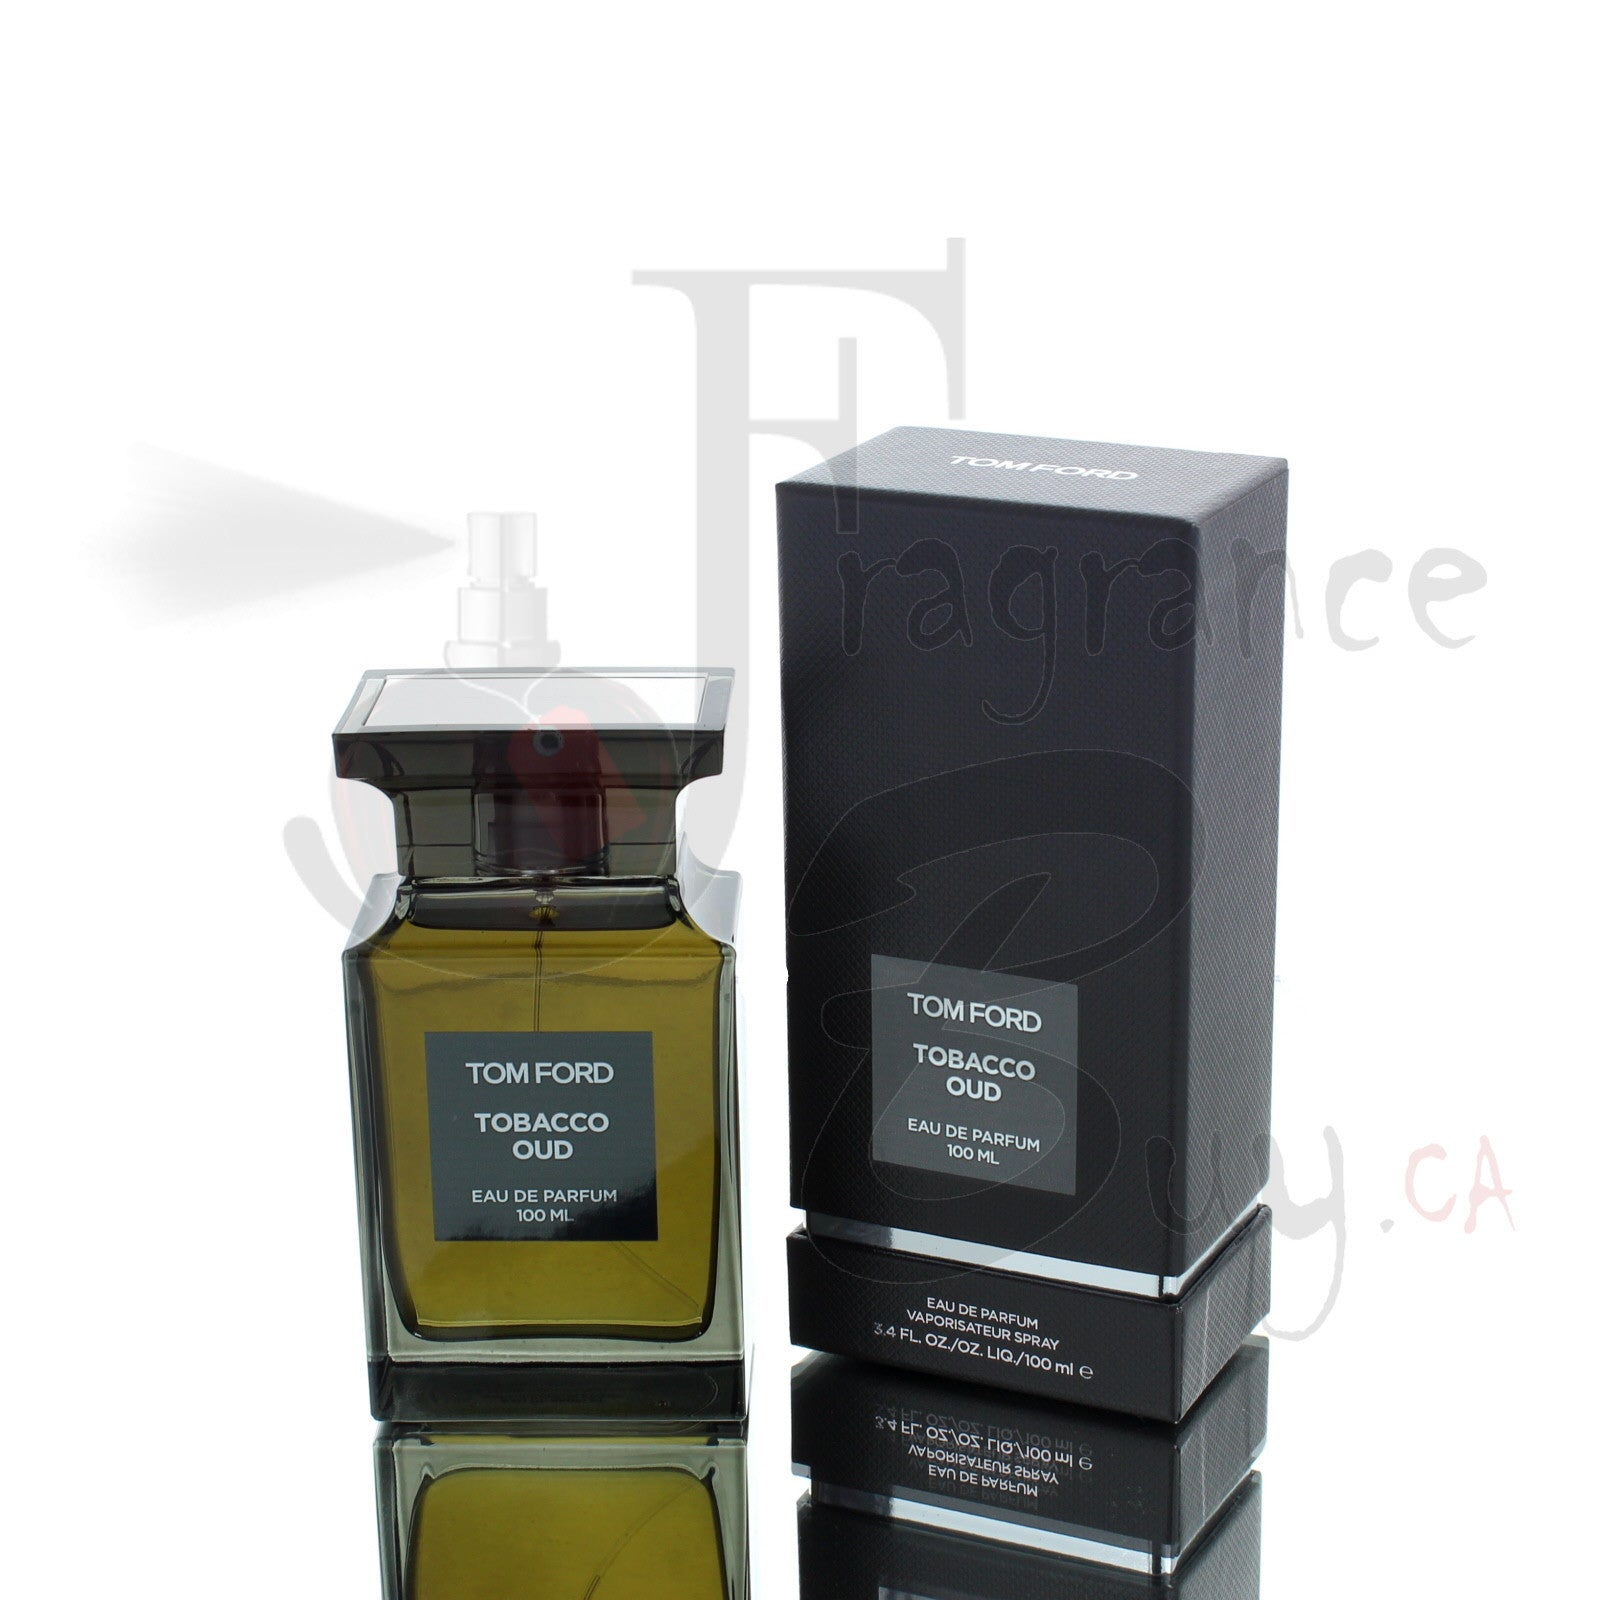 Tom Ford Tobacco Oud For Man. QUICK SHOP